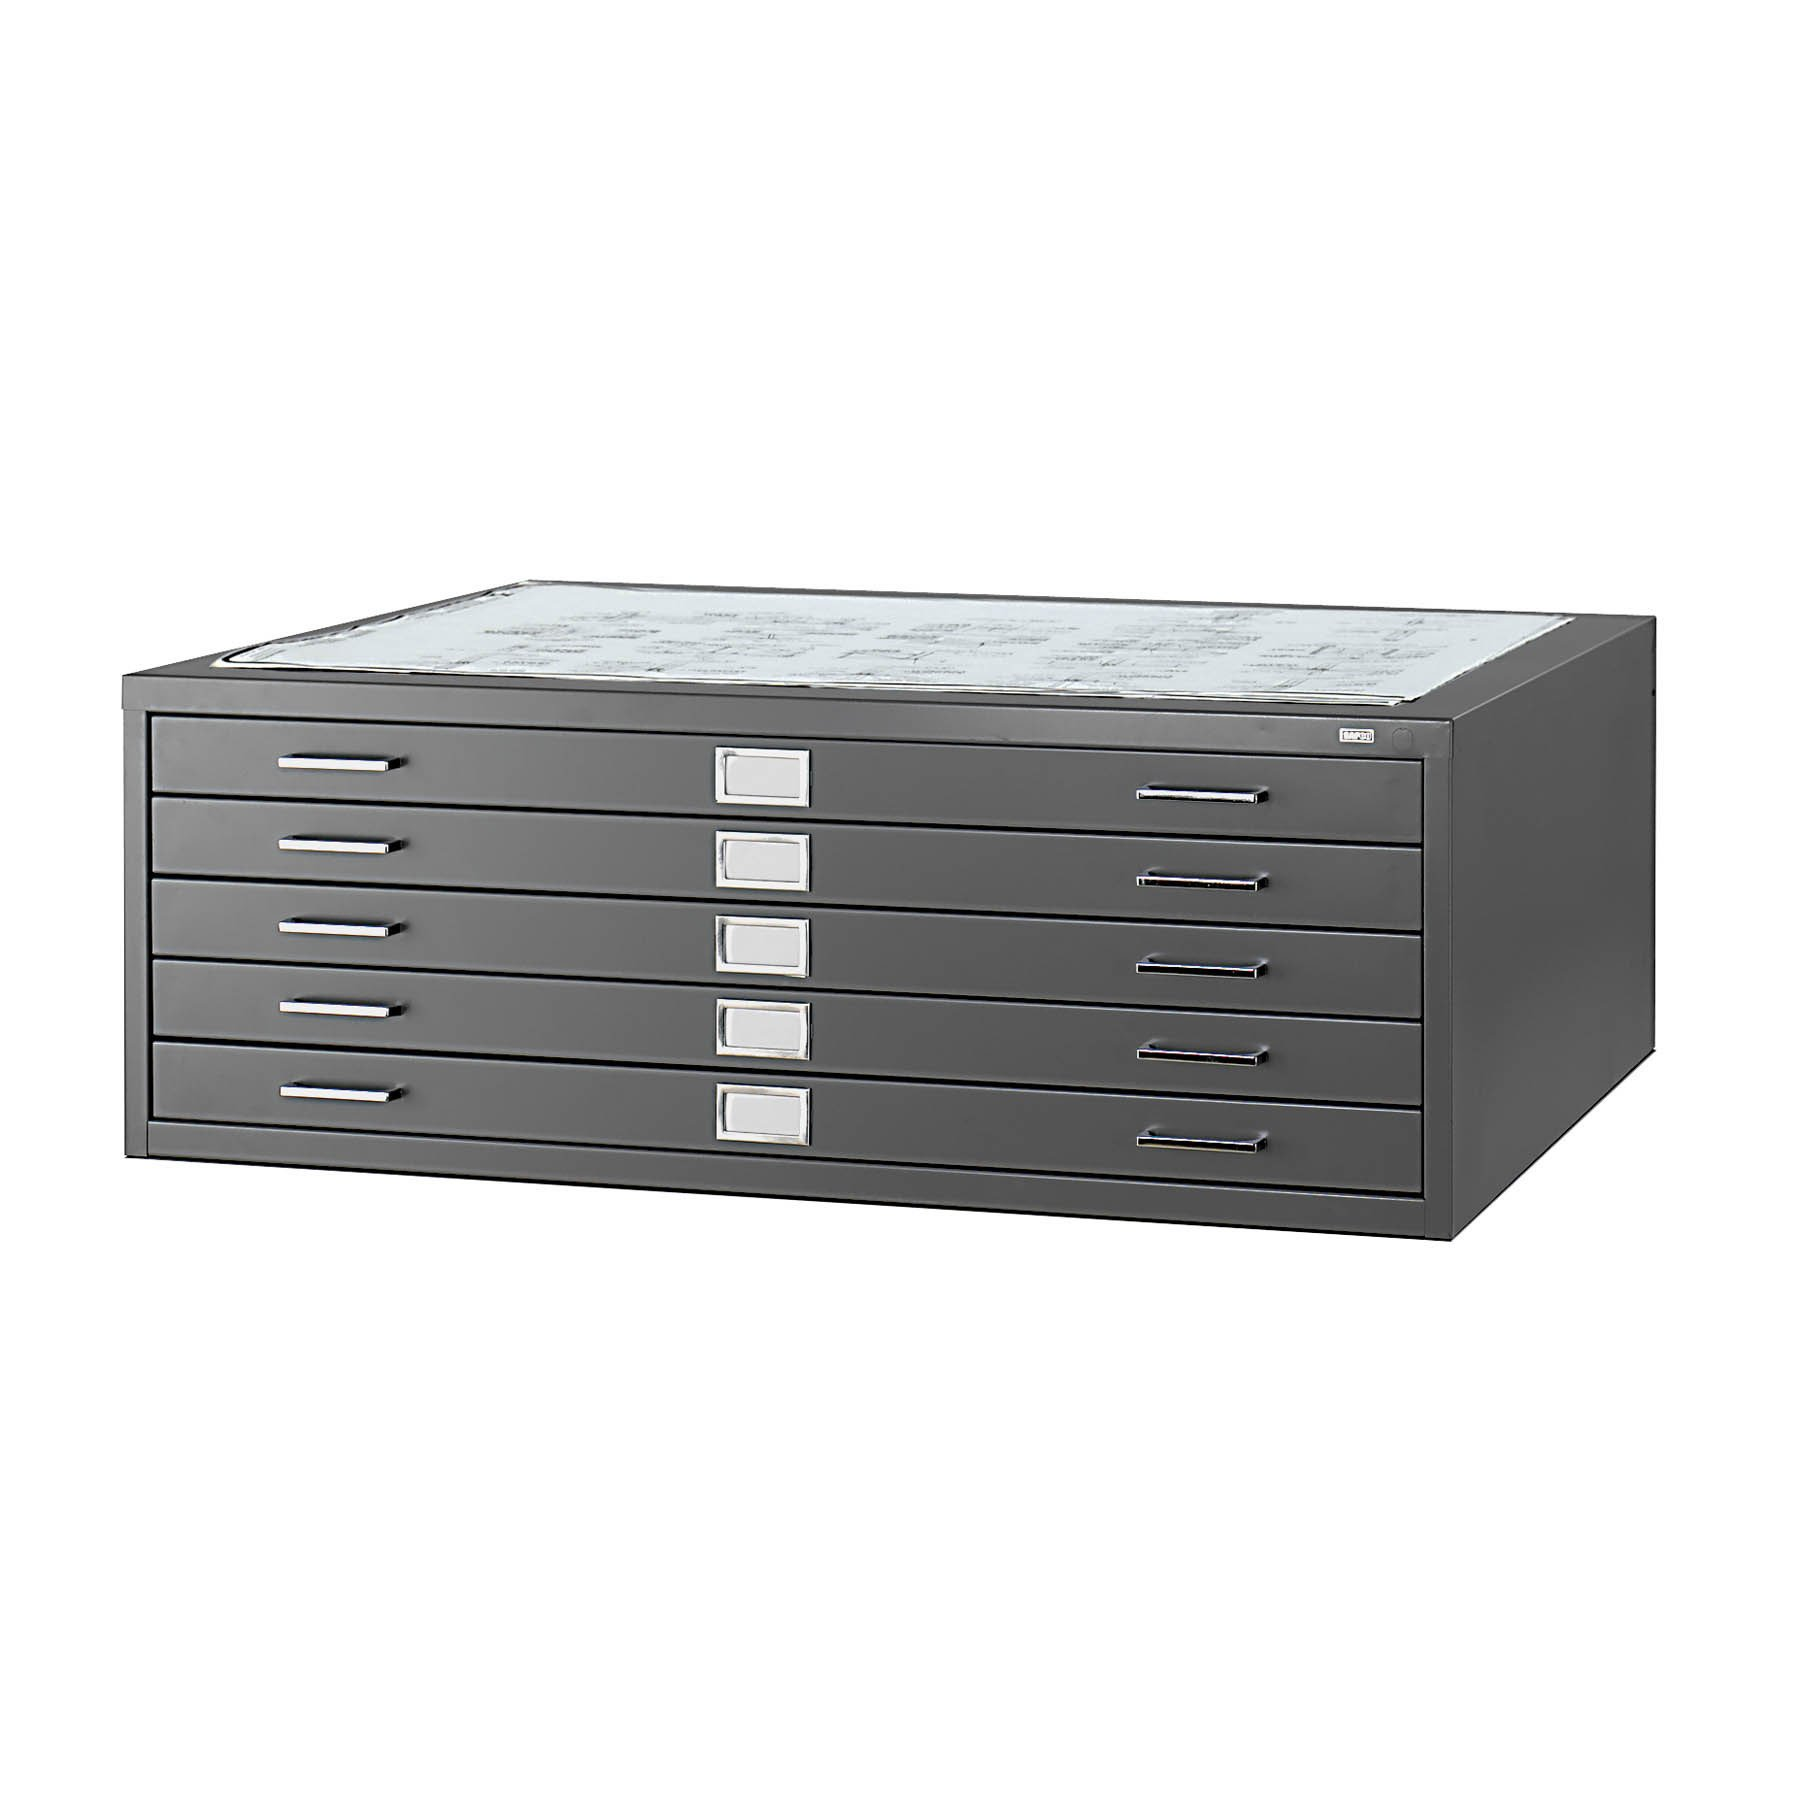 Safco Products Flat File for 48''W x 36''D Documents, 5-Drawer (Additional options sold separately), Black by Safco